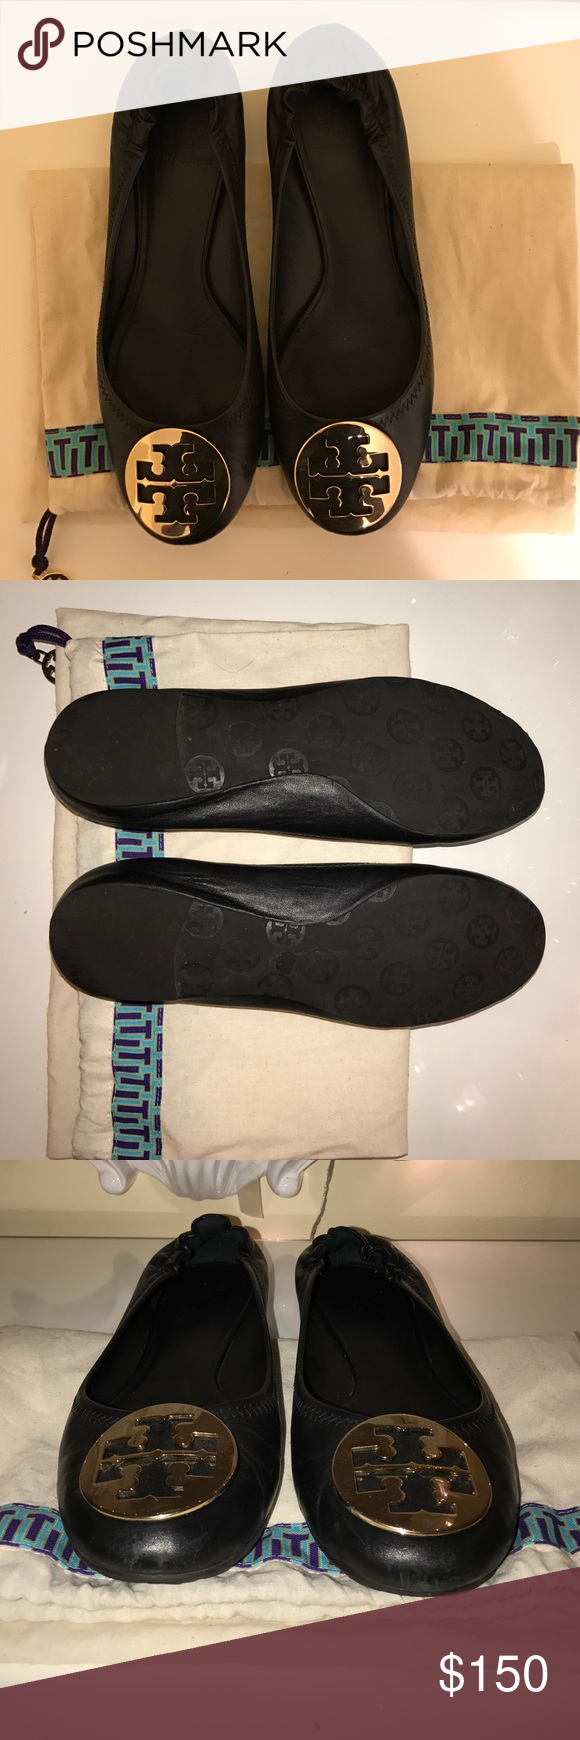 Tory burch reva flats! Black and gold Tory burch reva leather flat. Authentic come with dust bag. Worn a few times in great condition. I do bundle just ask! Tory Burch Shoes Flats & Loafers